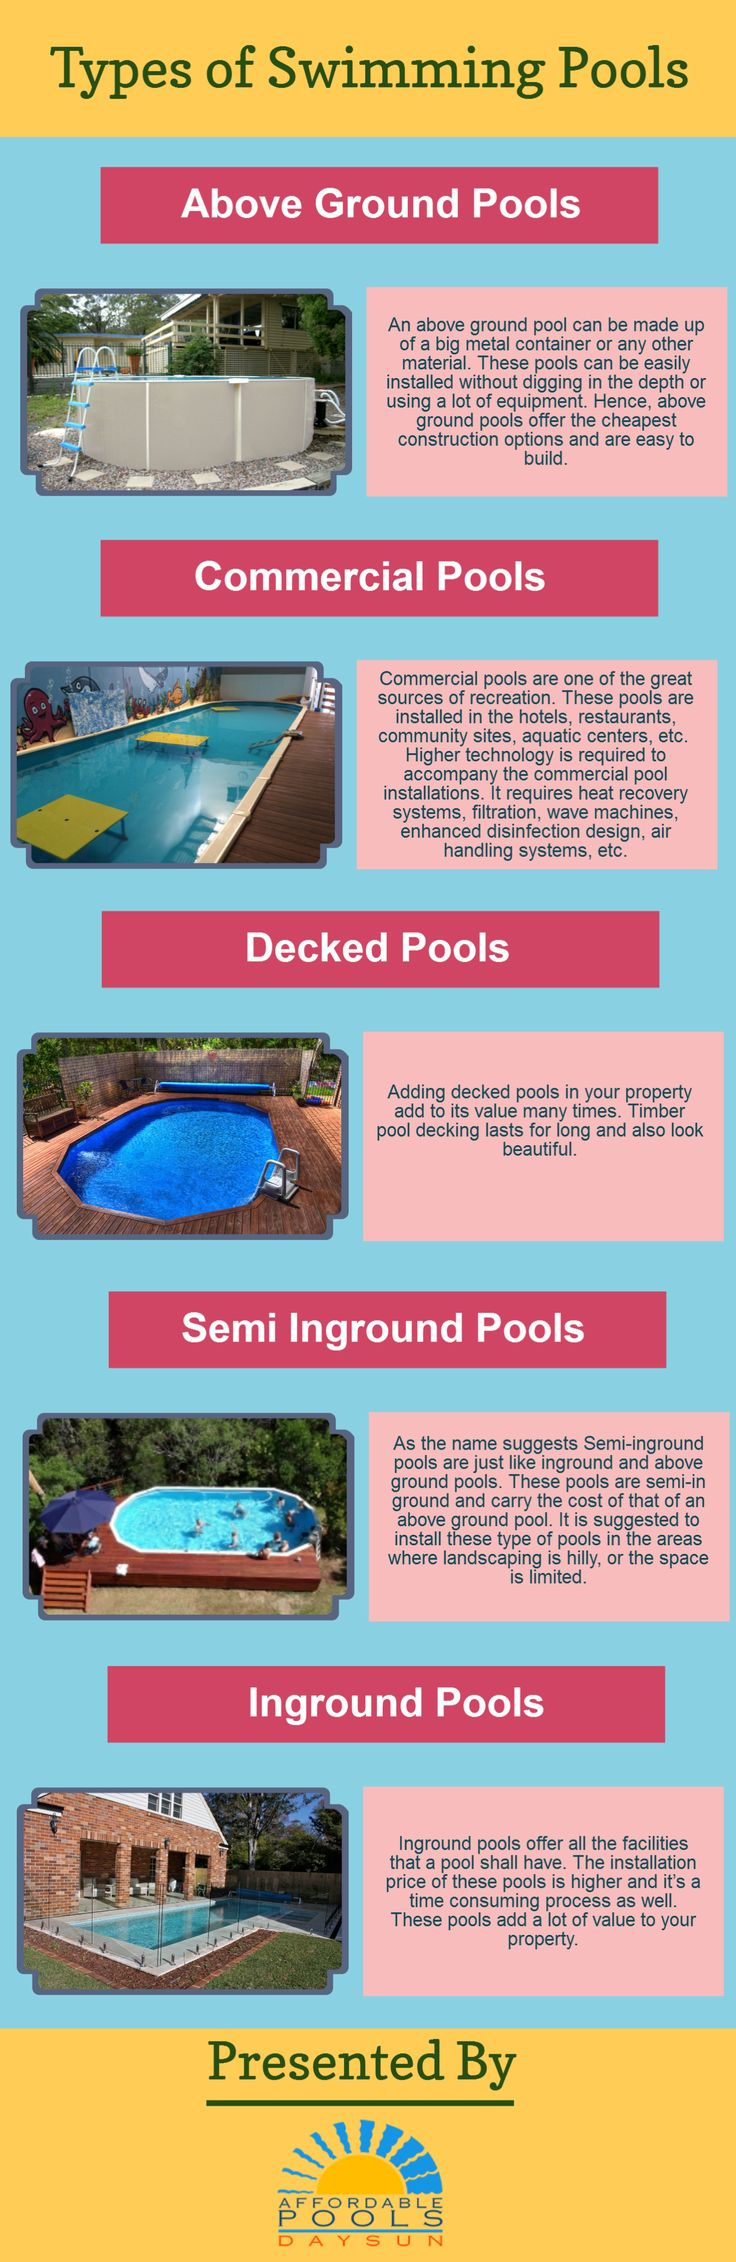 Swimming Pools Are One Of The Great Sources Of Recreation. These Pools Can  Be Installed